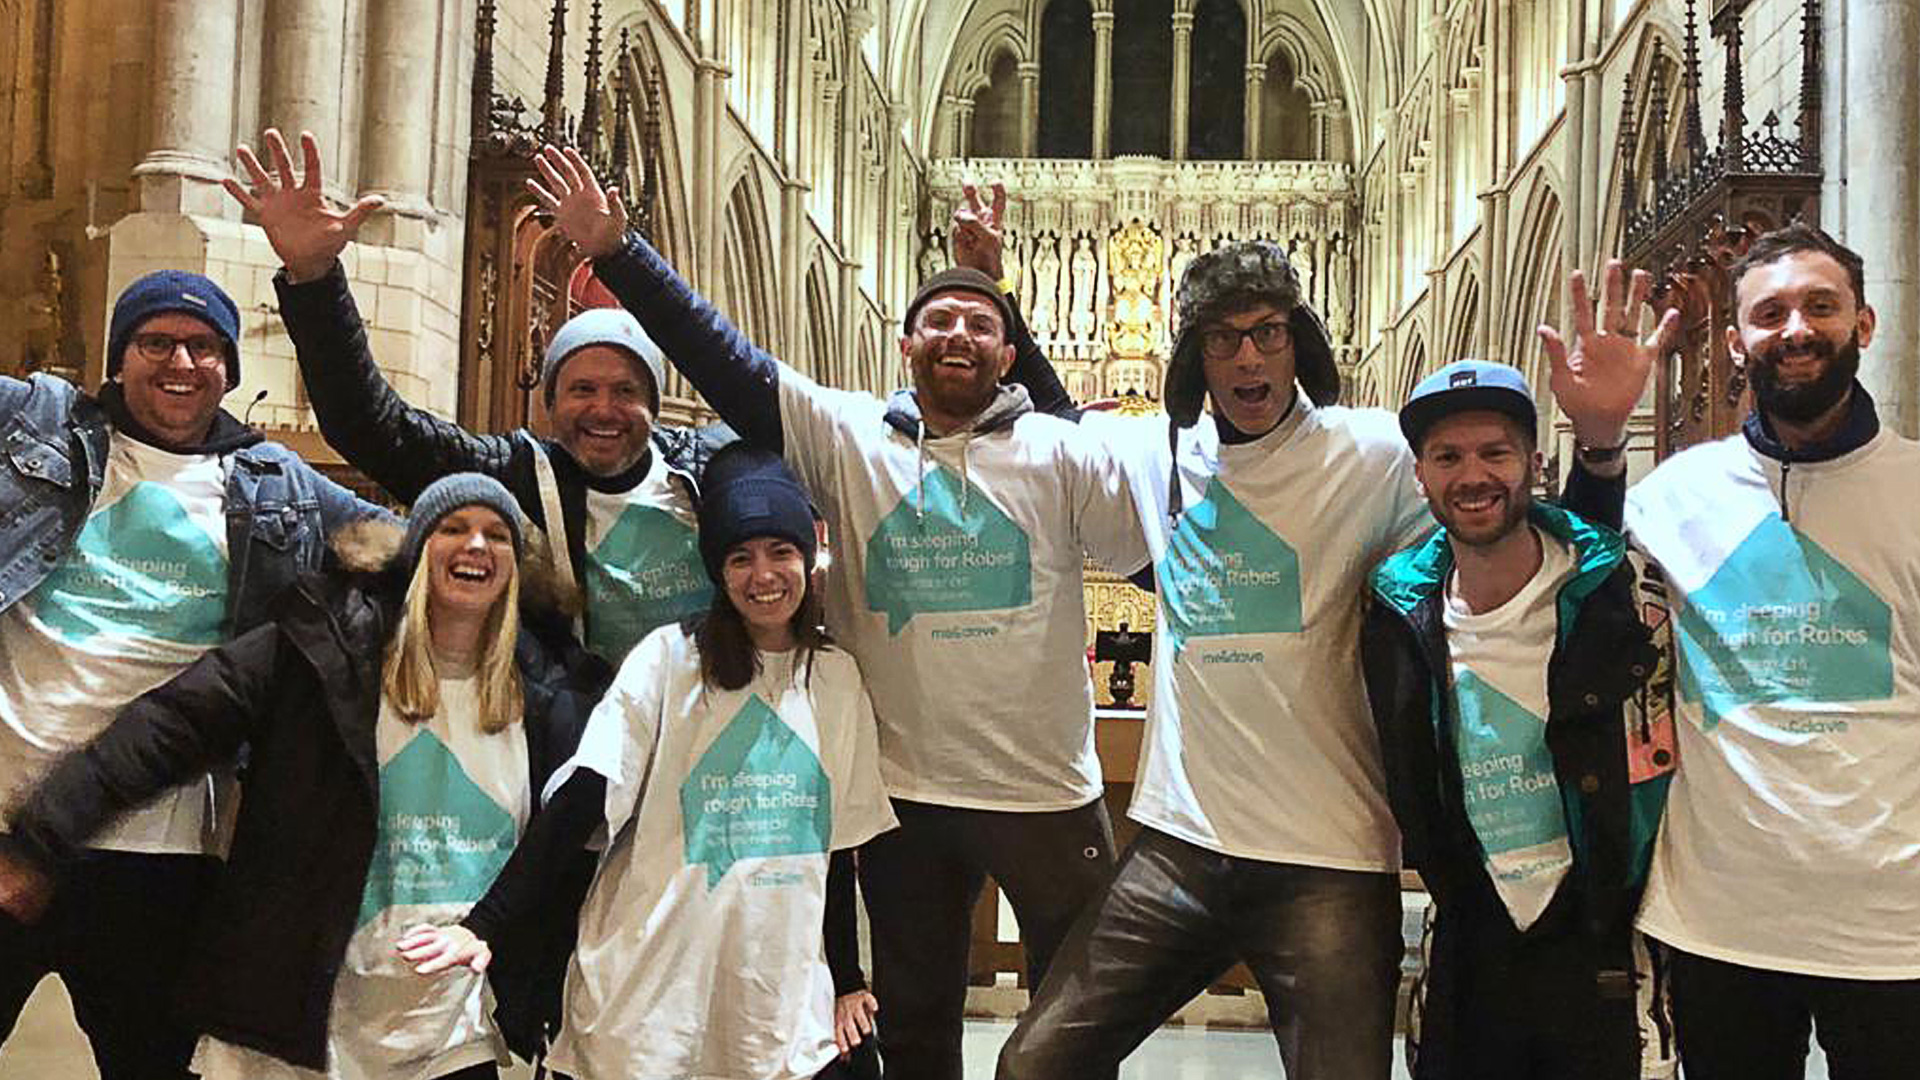 Robes Charity Sleepout